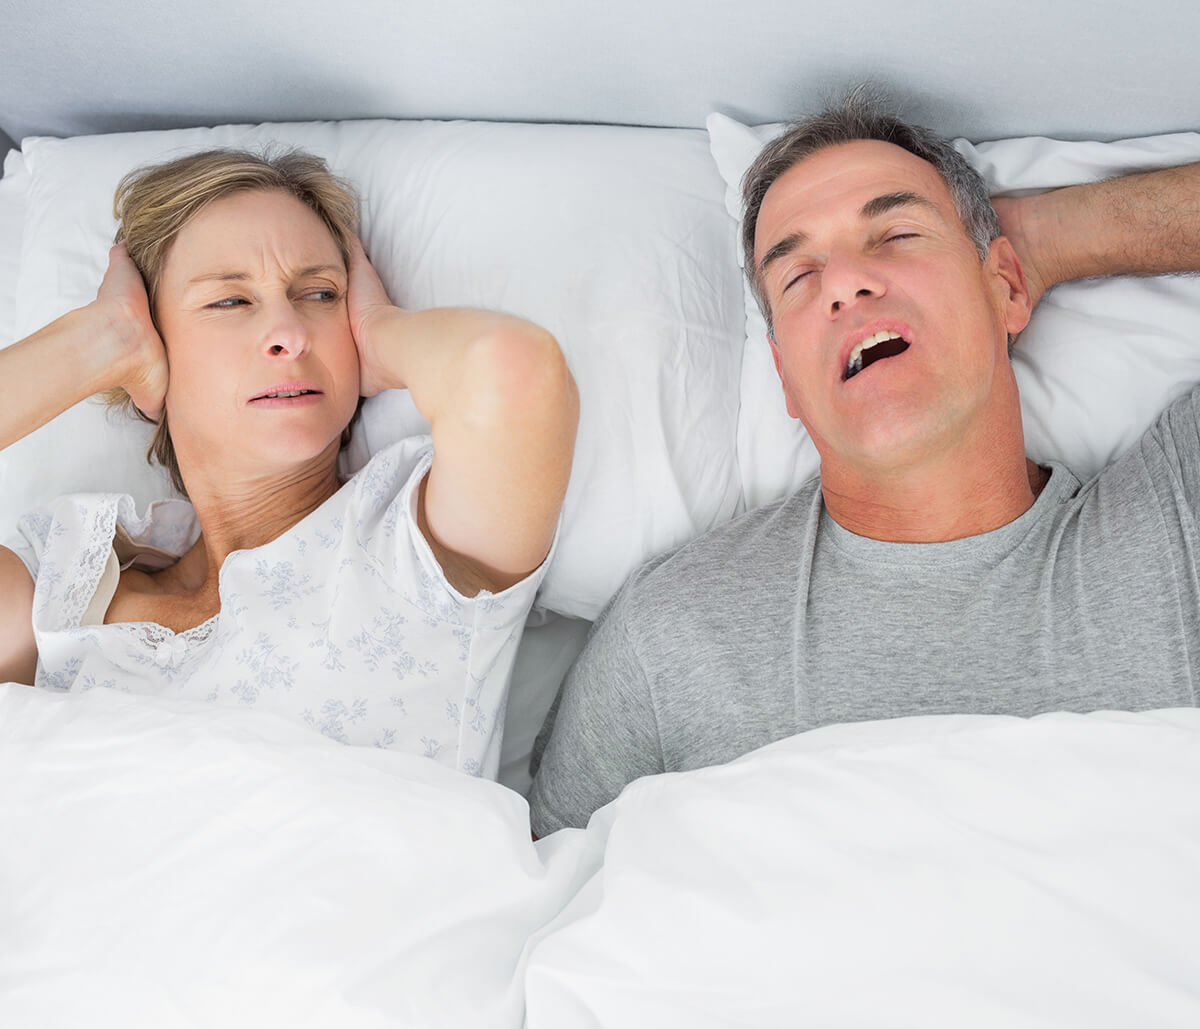 Sleep Apnea Dentist at Pines Dental Associates in Pembroke Pines Area